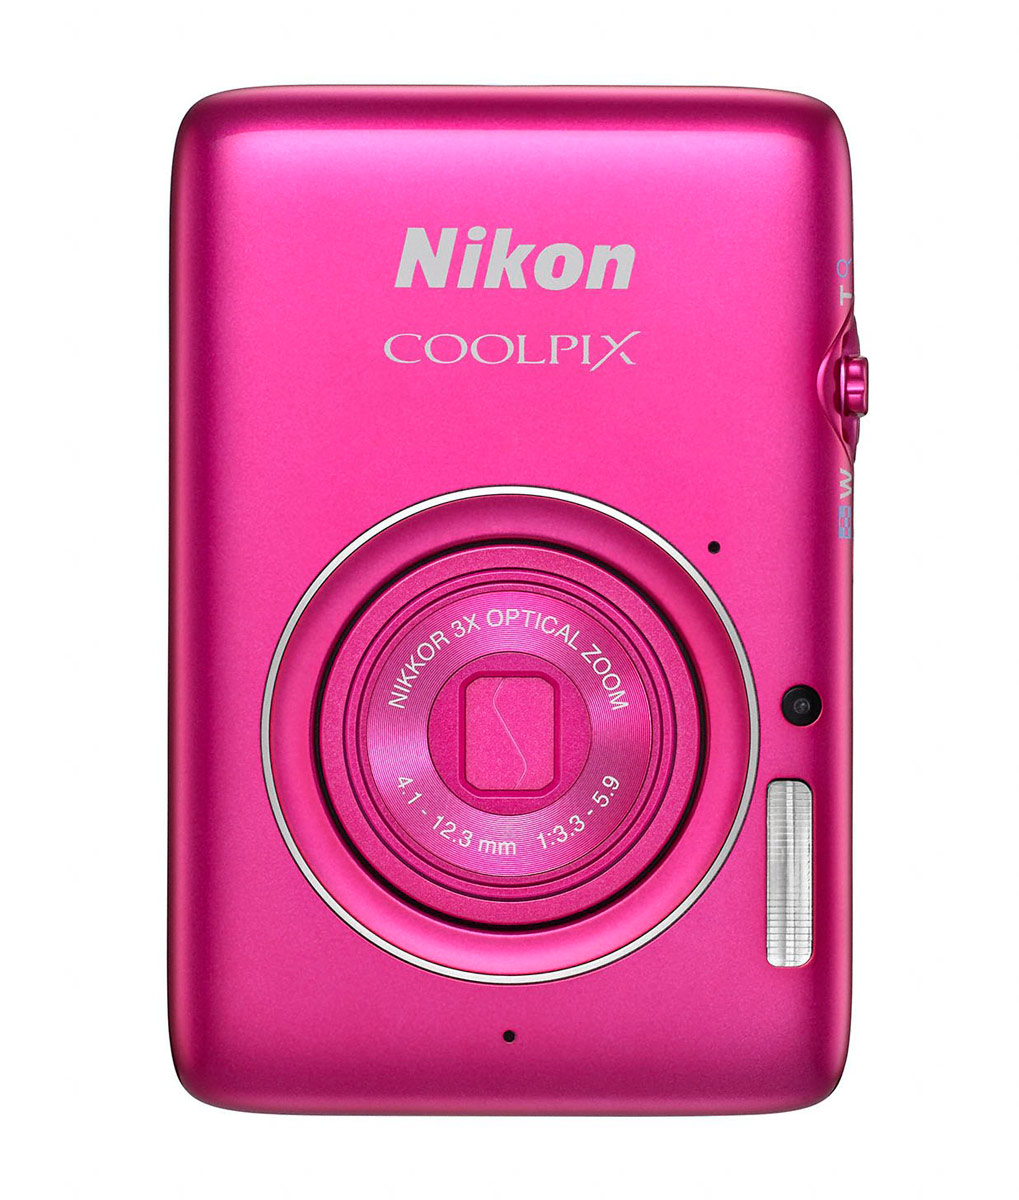 Nikon Coolpix S02 - Pink - Front